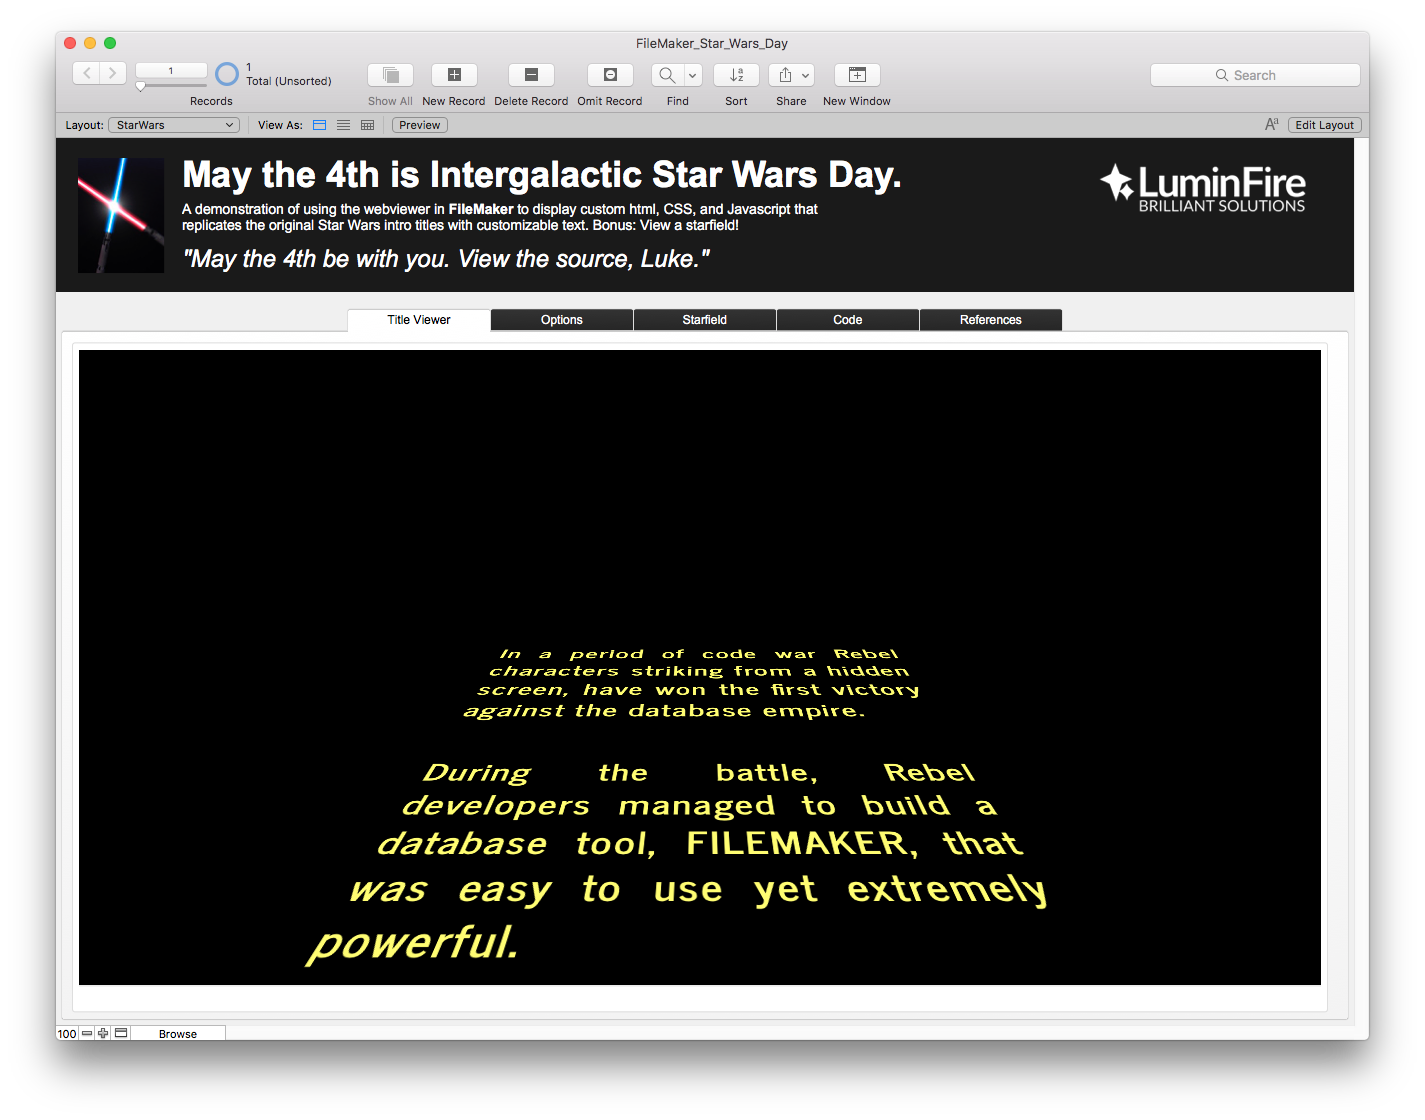 Intergalactic Star Wars Day and FileMaker